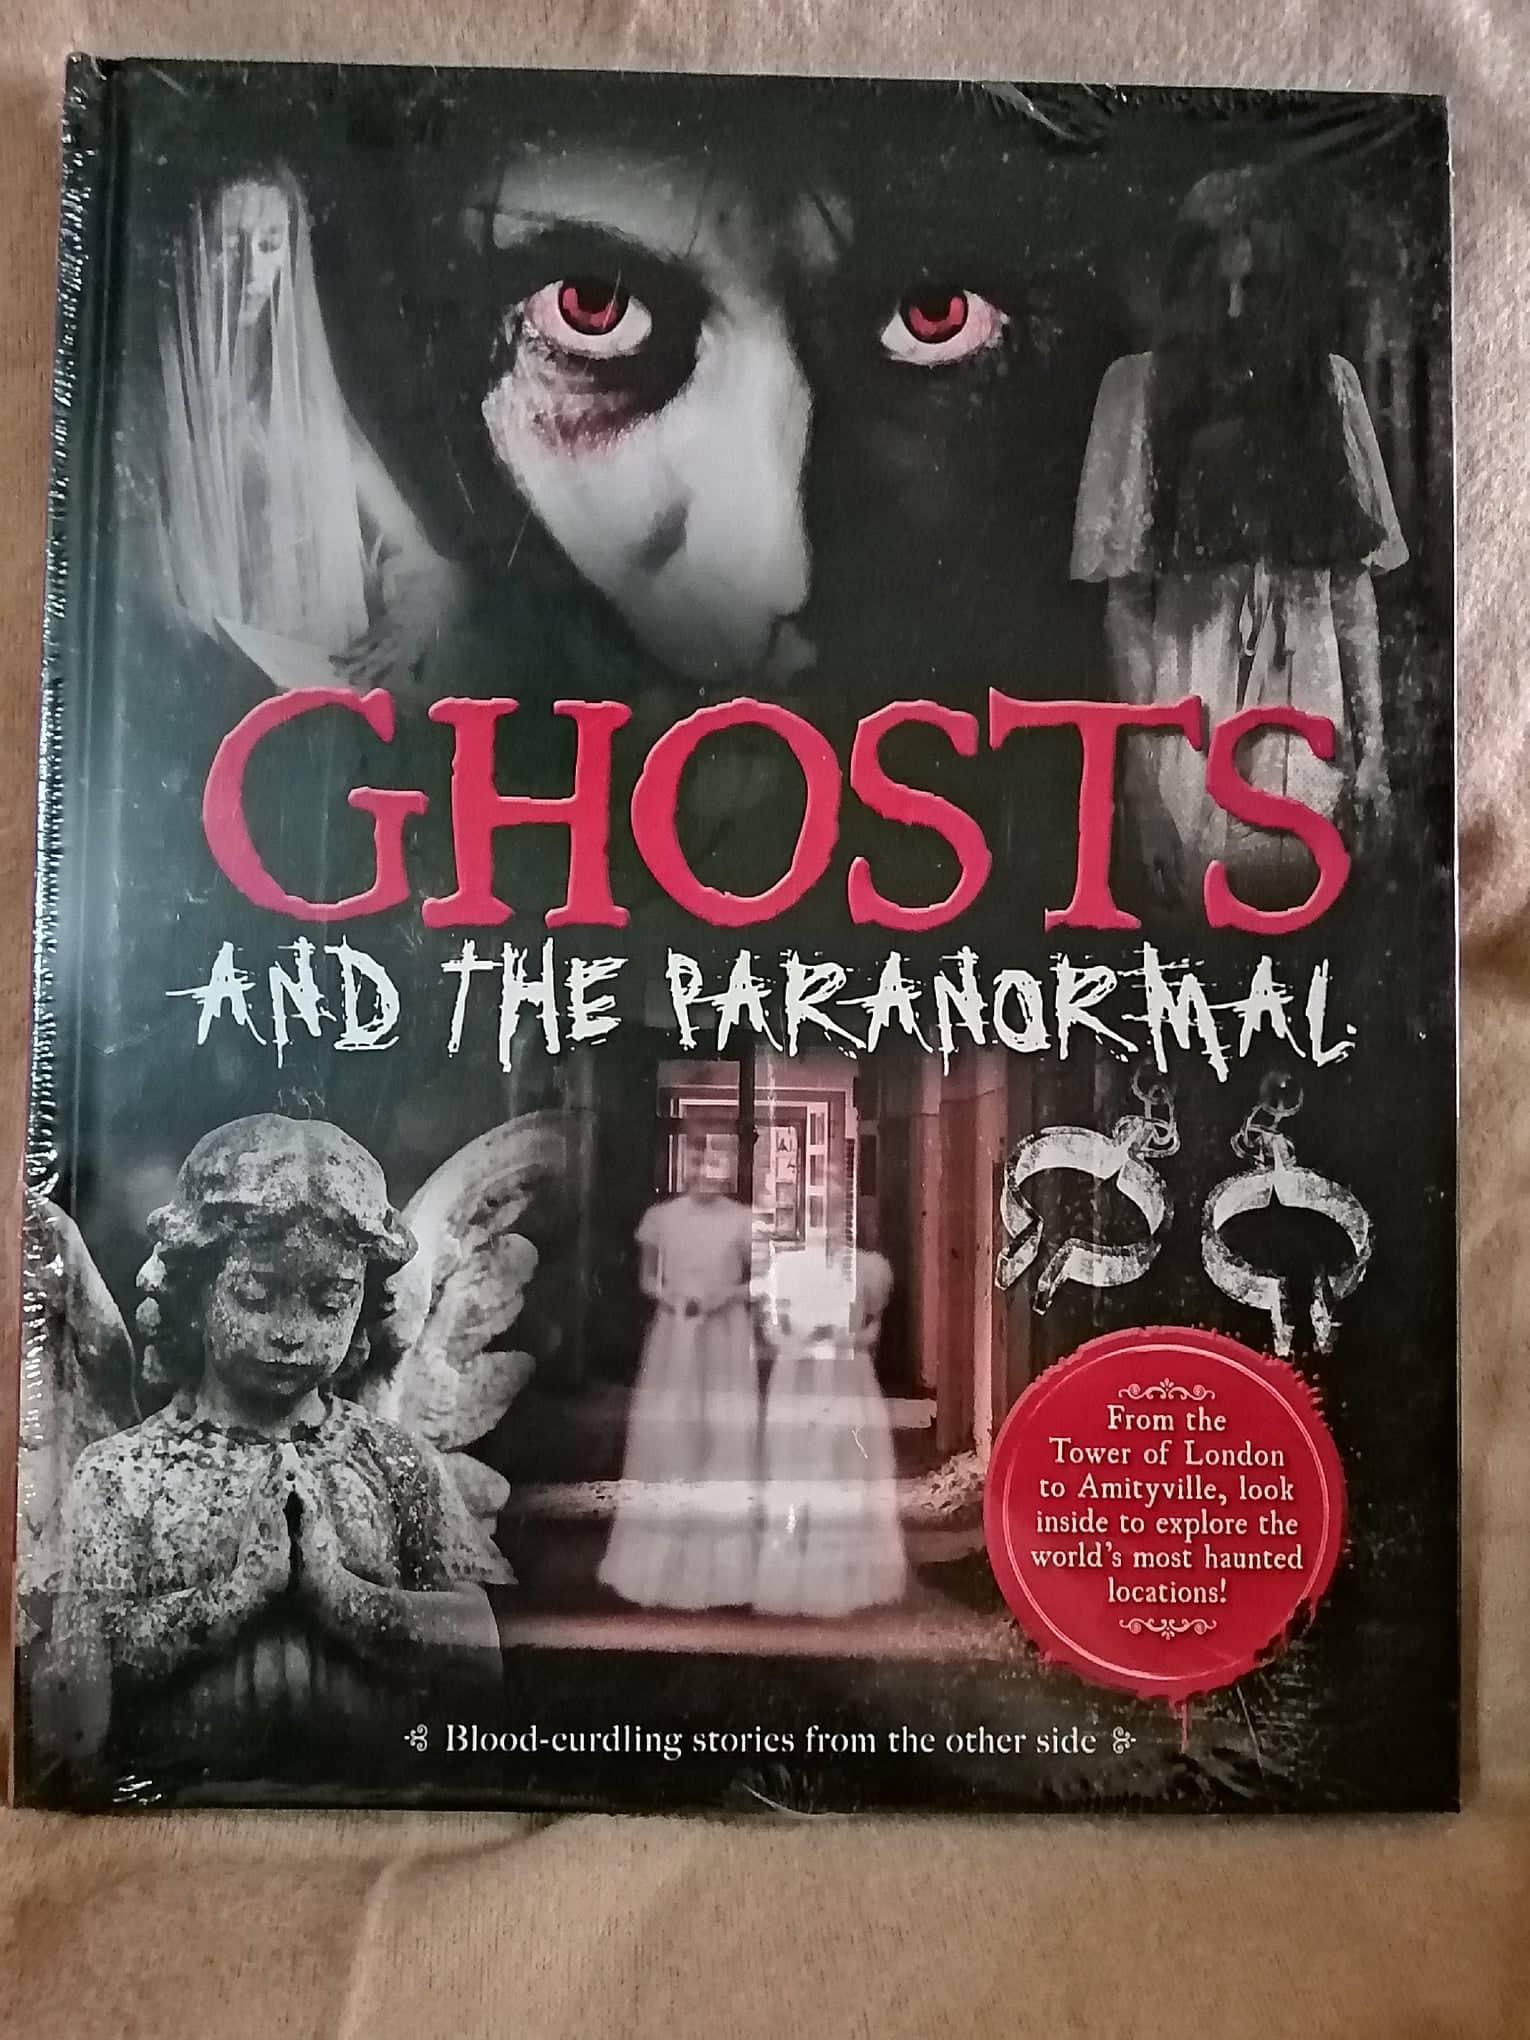 Ghost Stories And The Paranormal By Bookfinds.